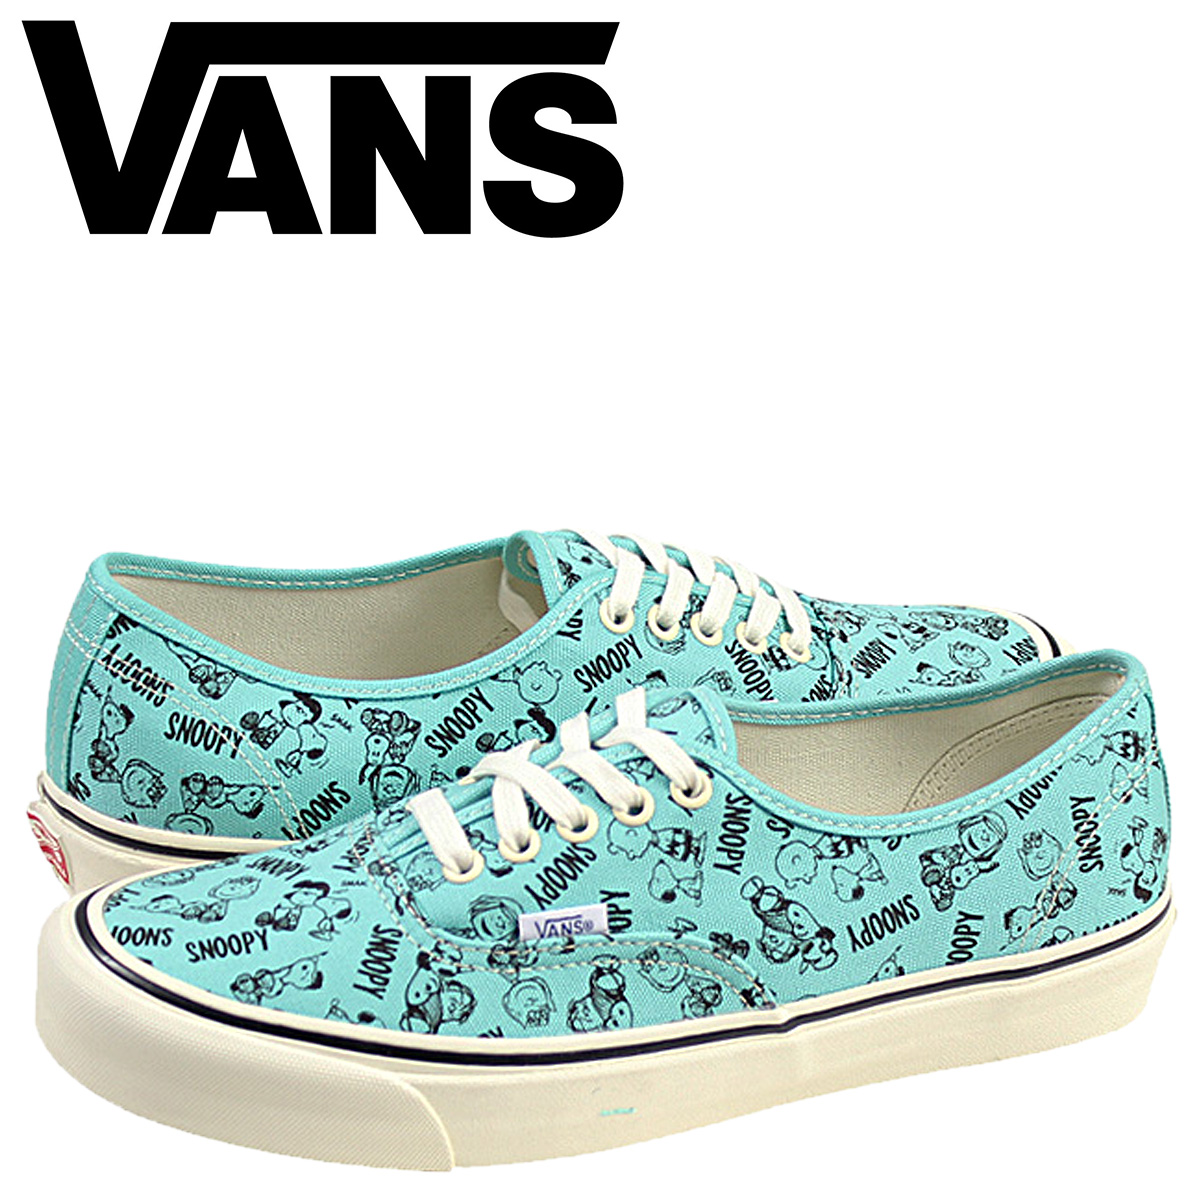 vans original shoes